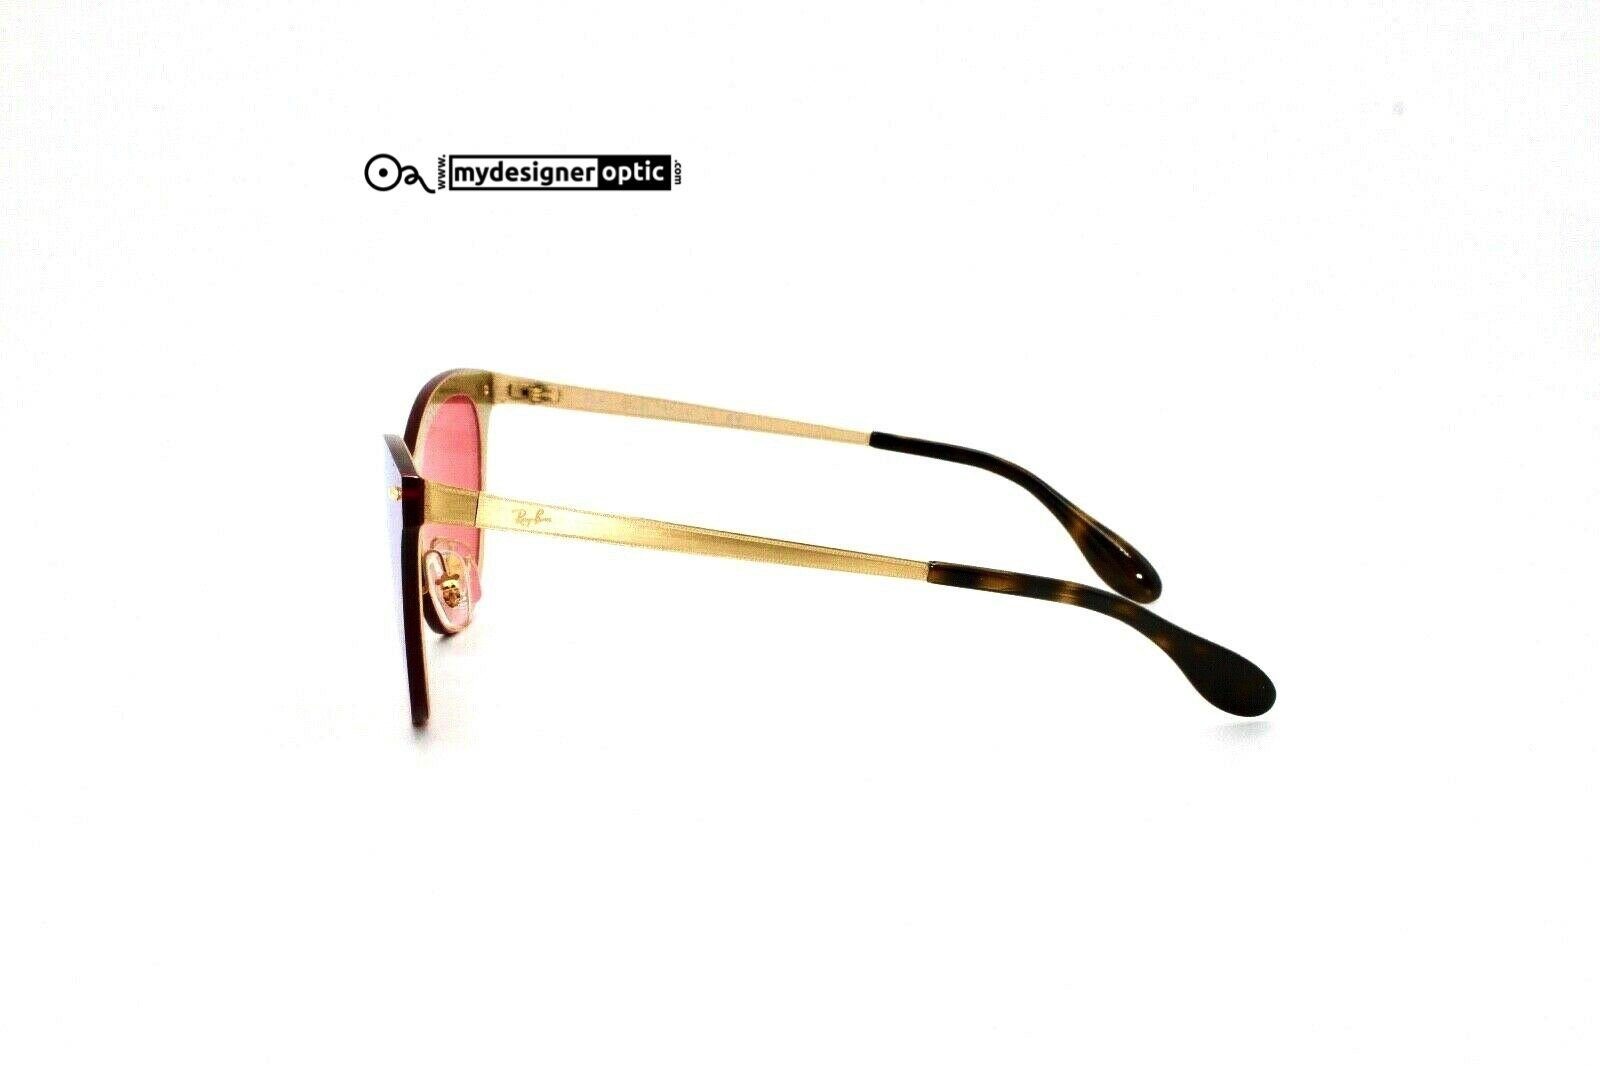 Ray Ban Sunglasses RB 3580-N 043/E4 140 2N Made in Italy - Mydesigneroptic